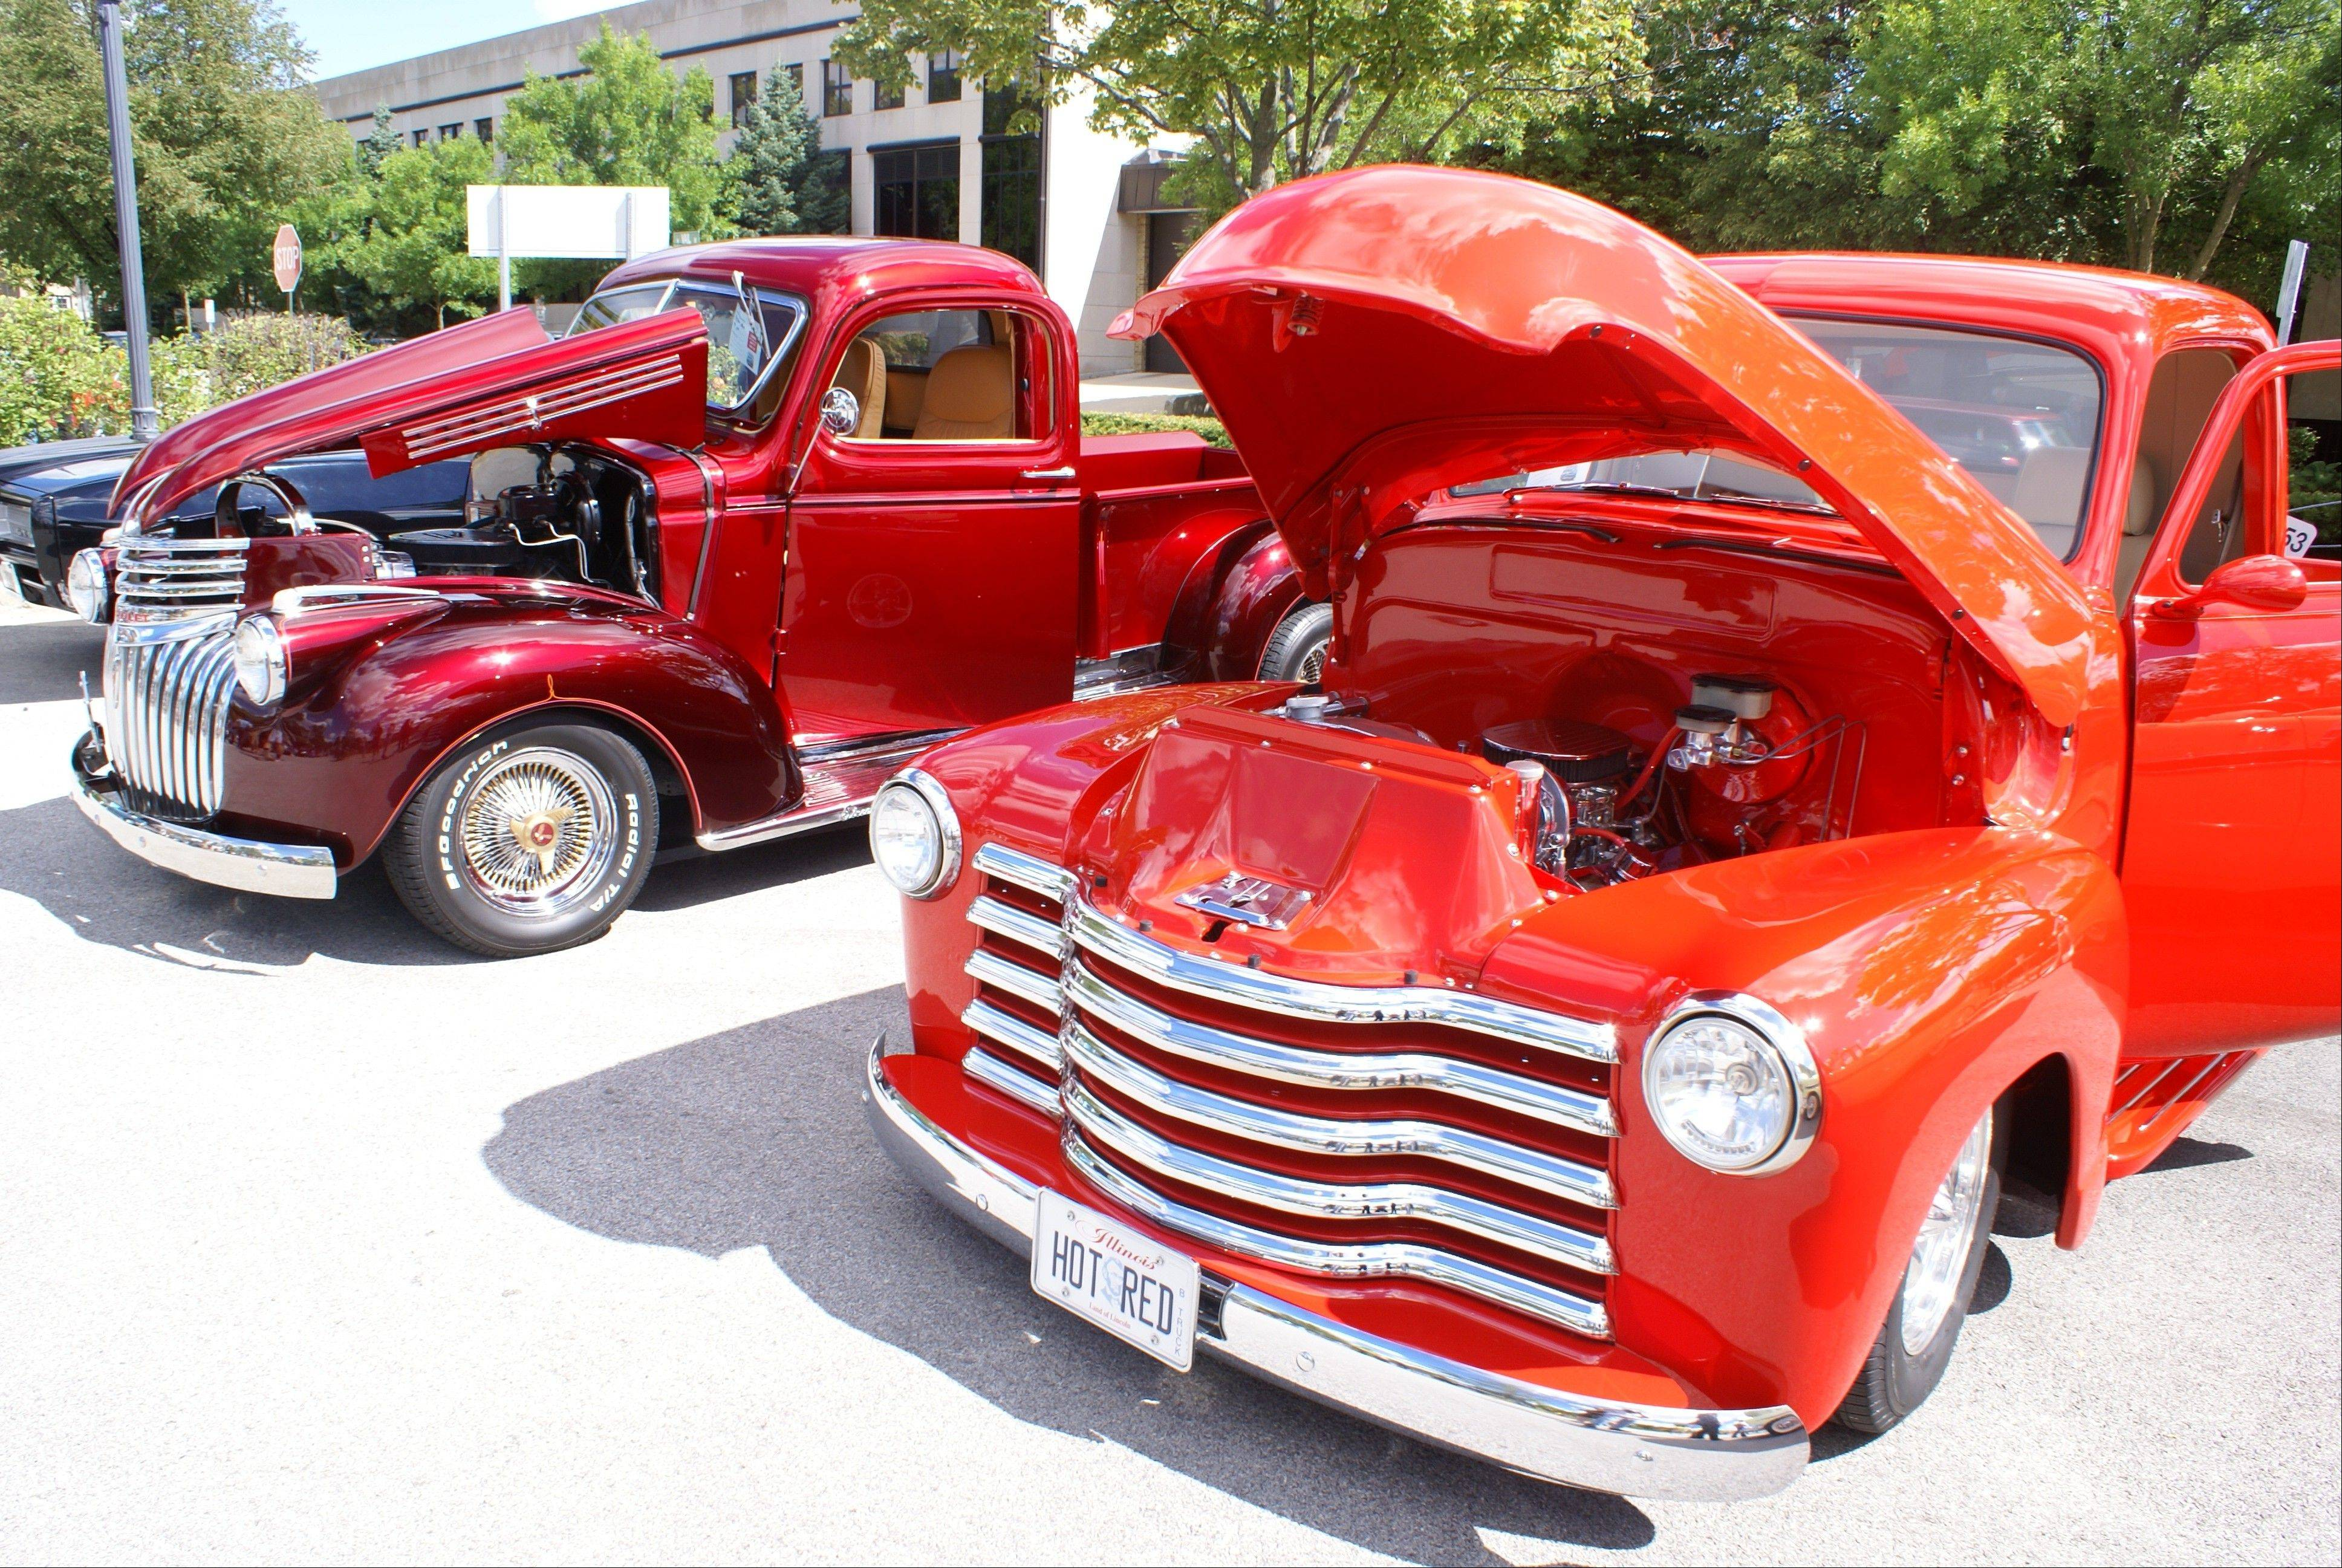 Motoring at the Museum car show and Plein Air Art gathering takes place Sunday at the Arlington Heights Historical Museum.